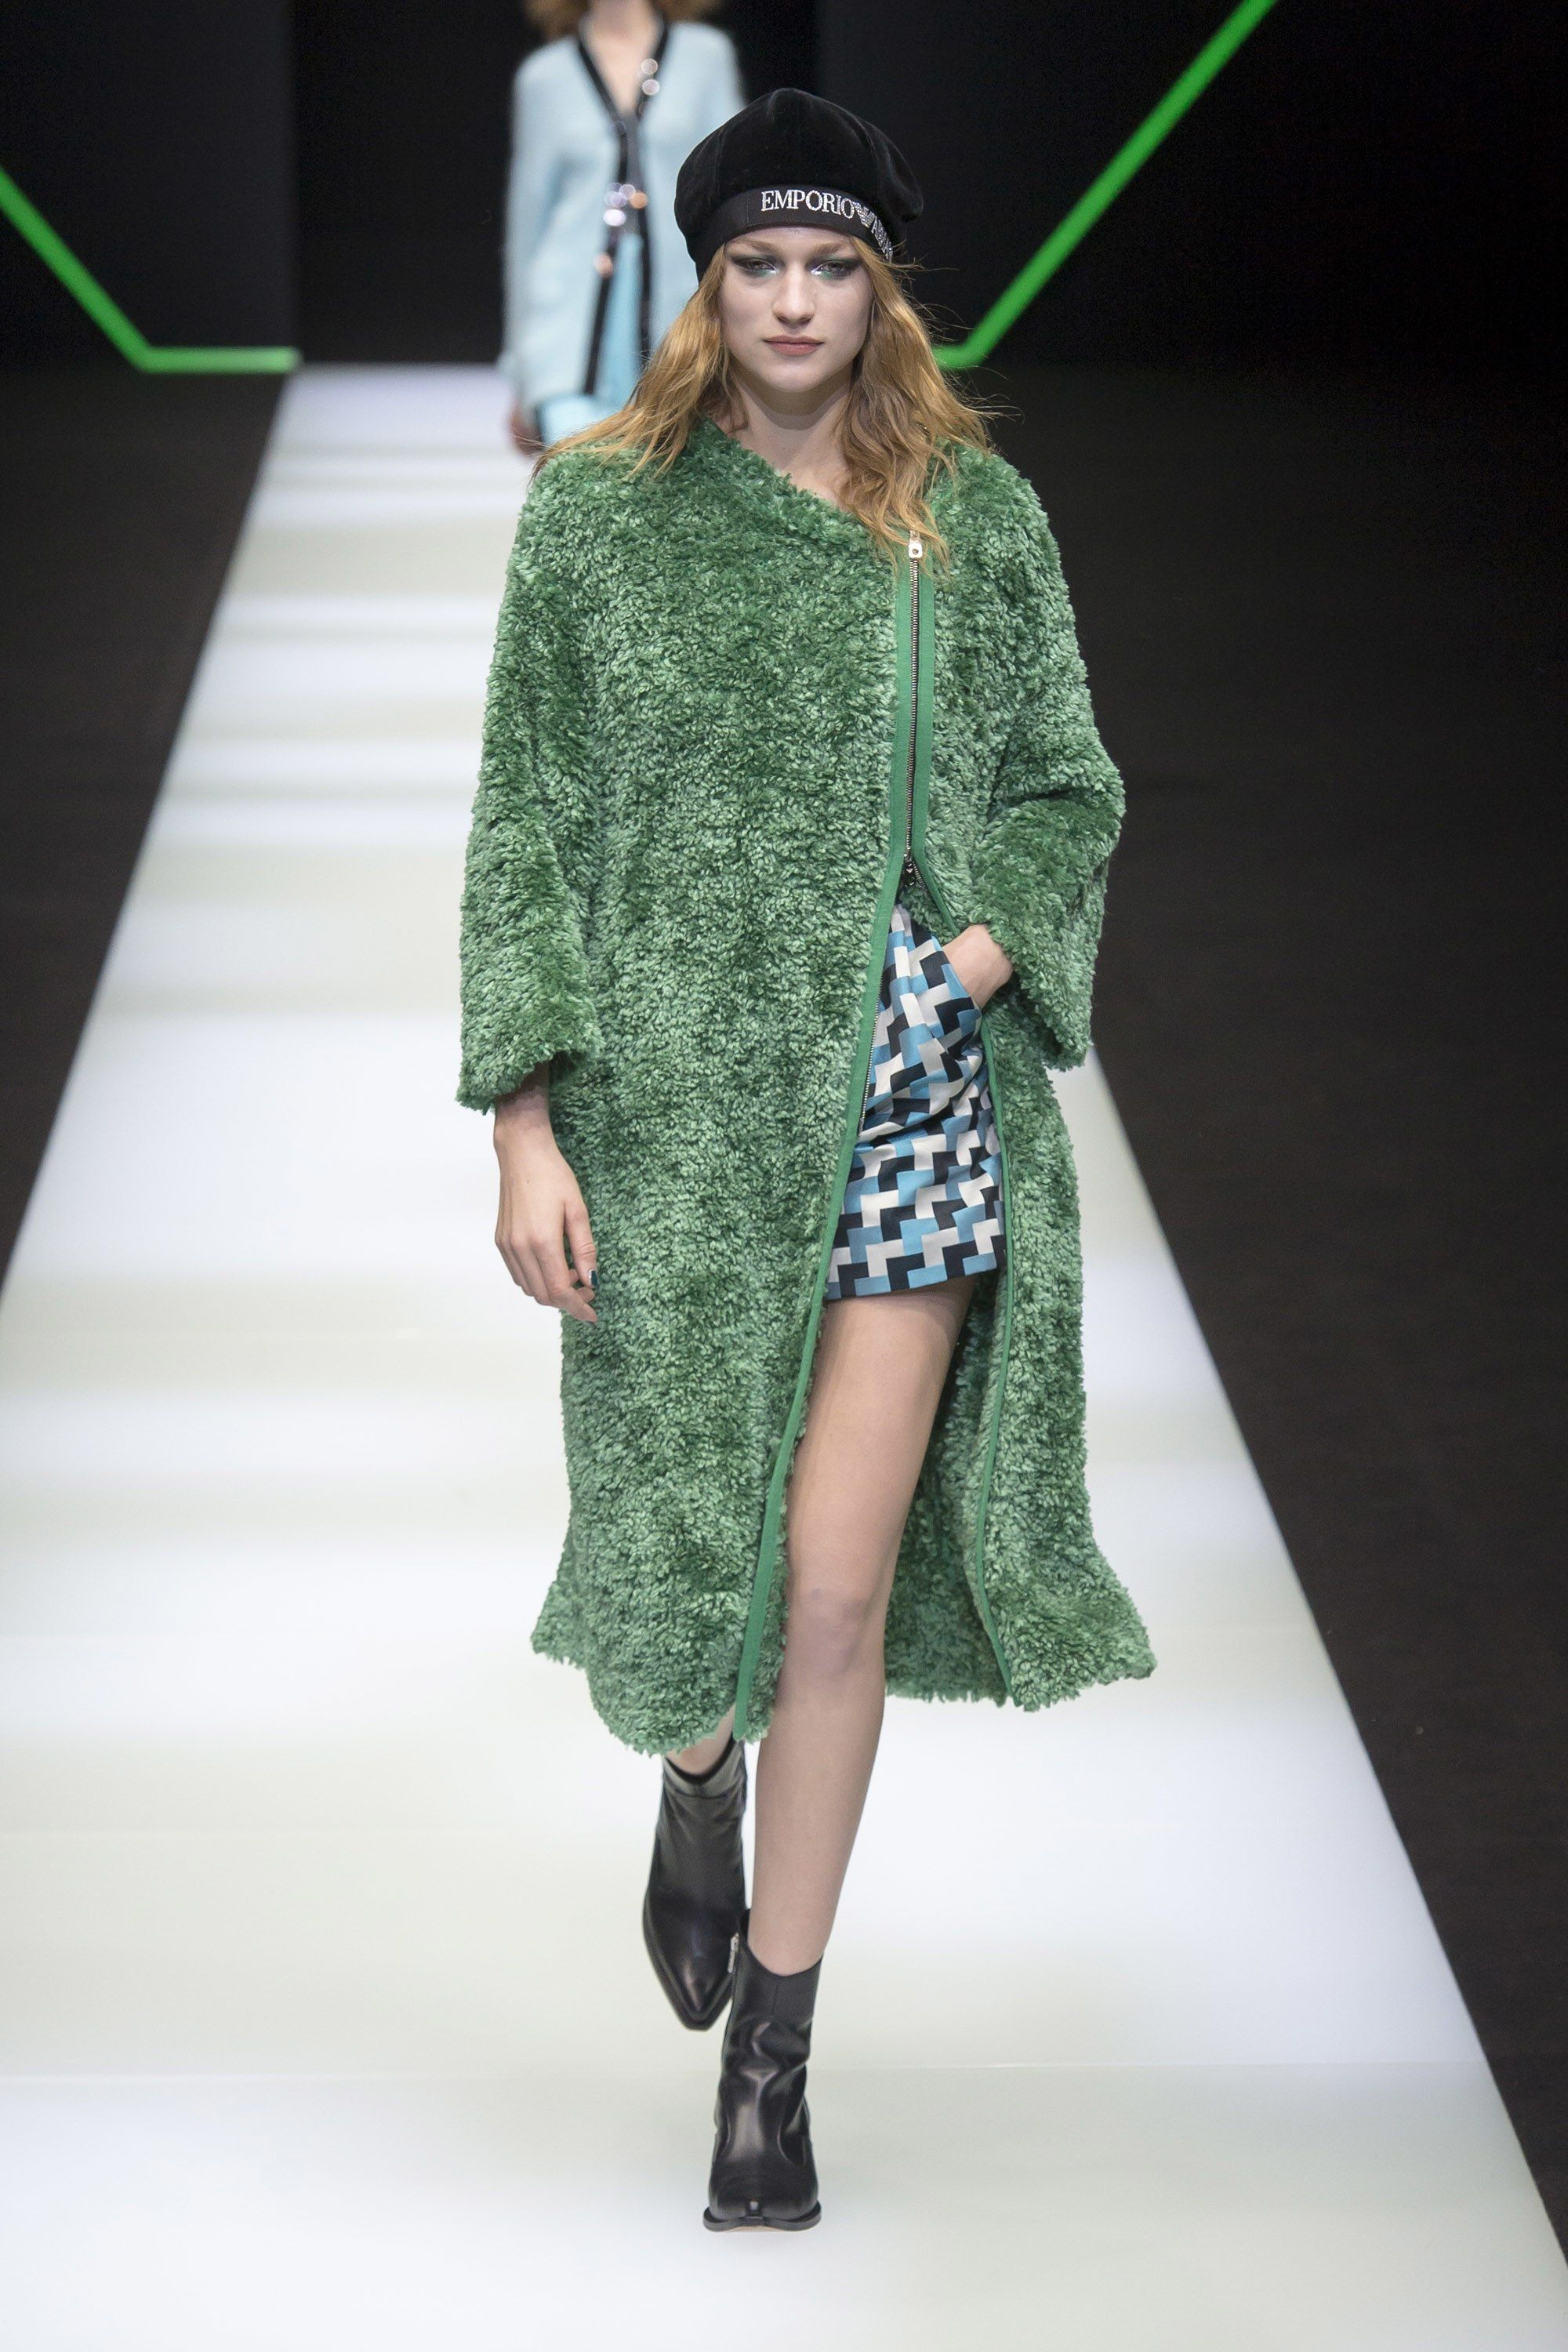 65013badee7 Emporio Armani Fall 2018 Ready-to-Wear Collection - Vogue